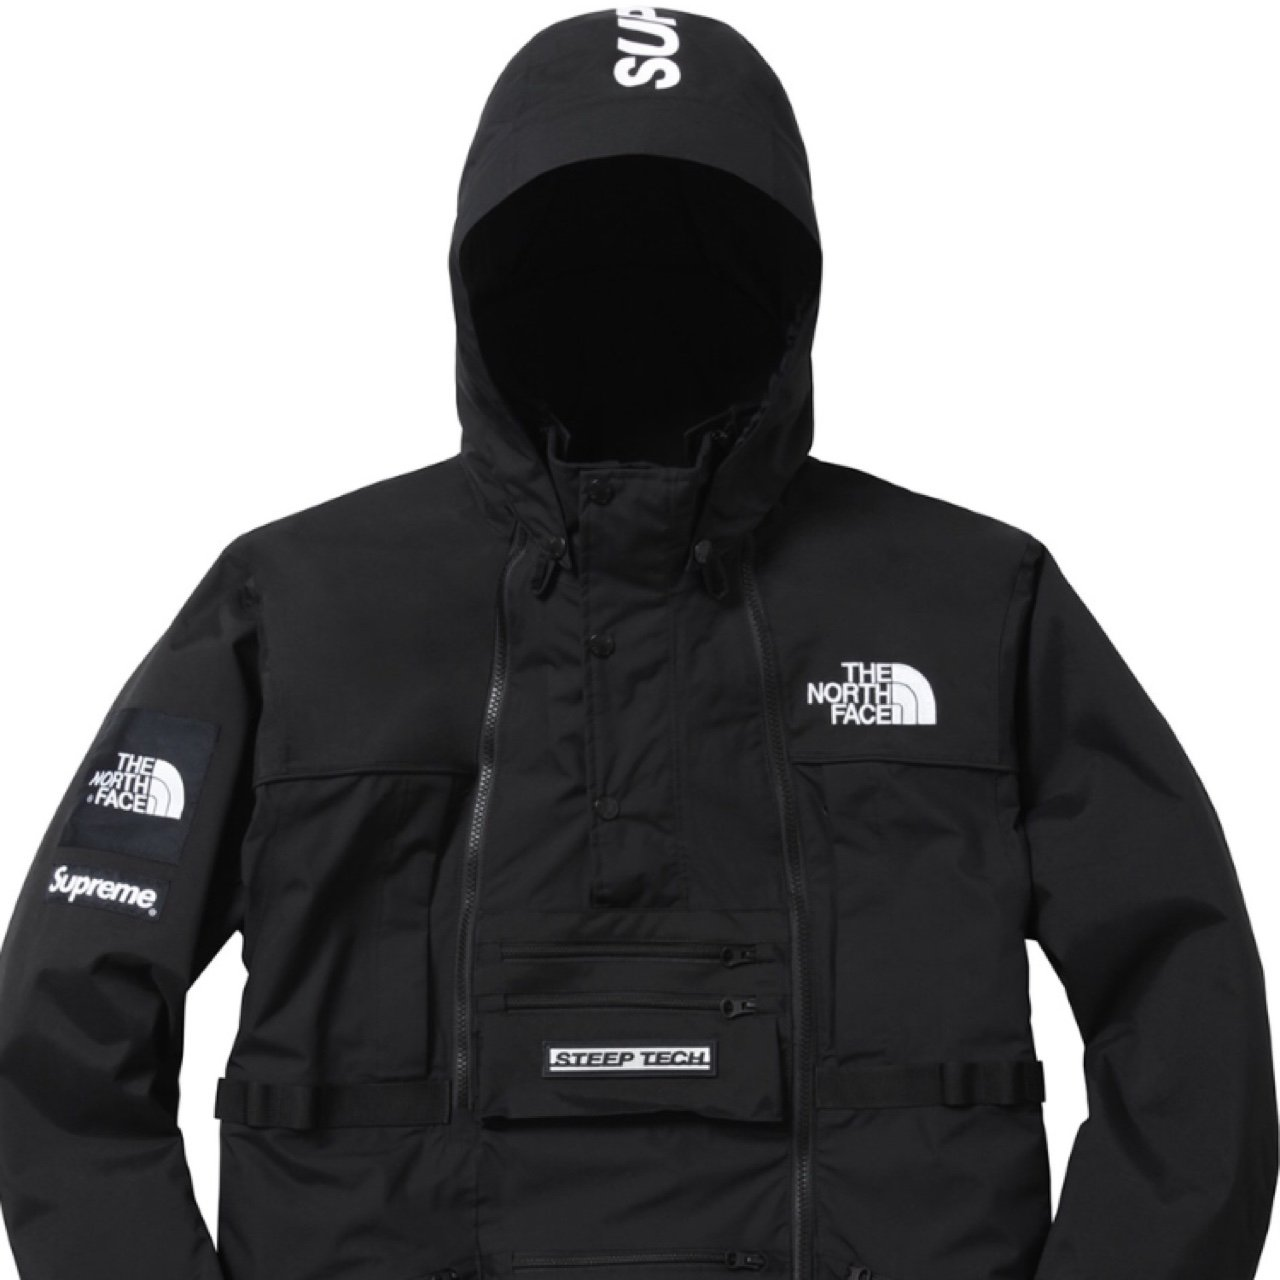 Yeezy Plug 3 Years Ago Niceville Fl Usa Supreme Jacket Parka Size Medium Black The North Face Collab